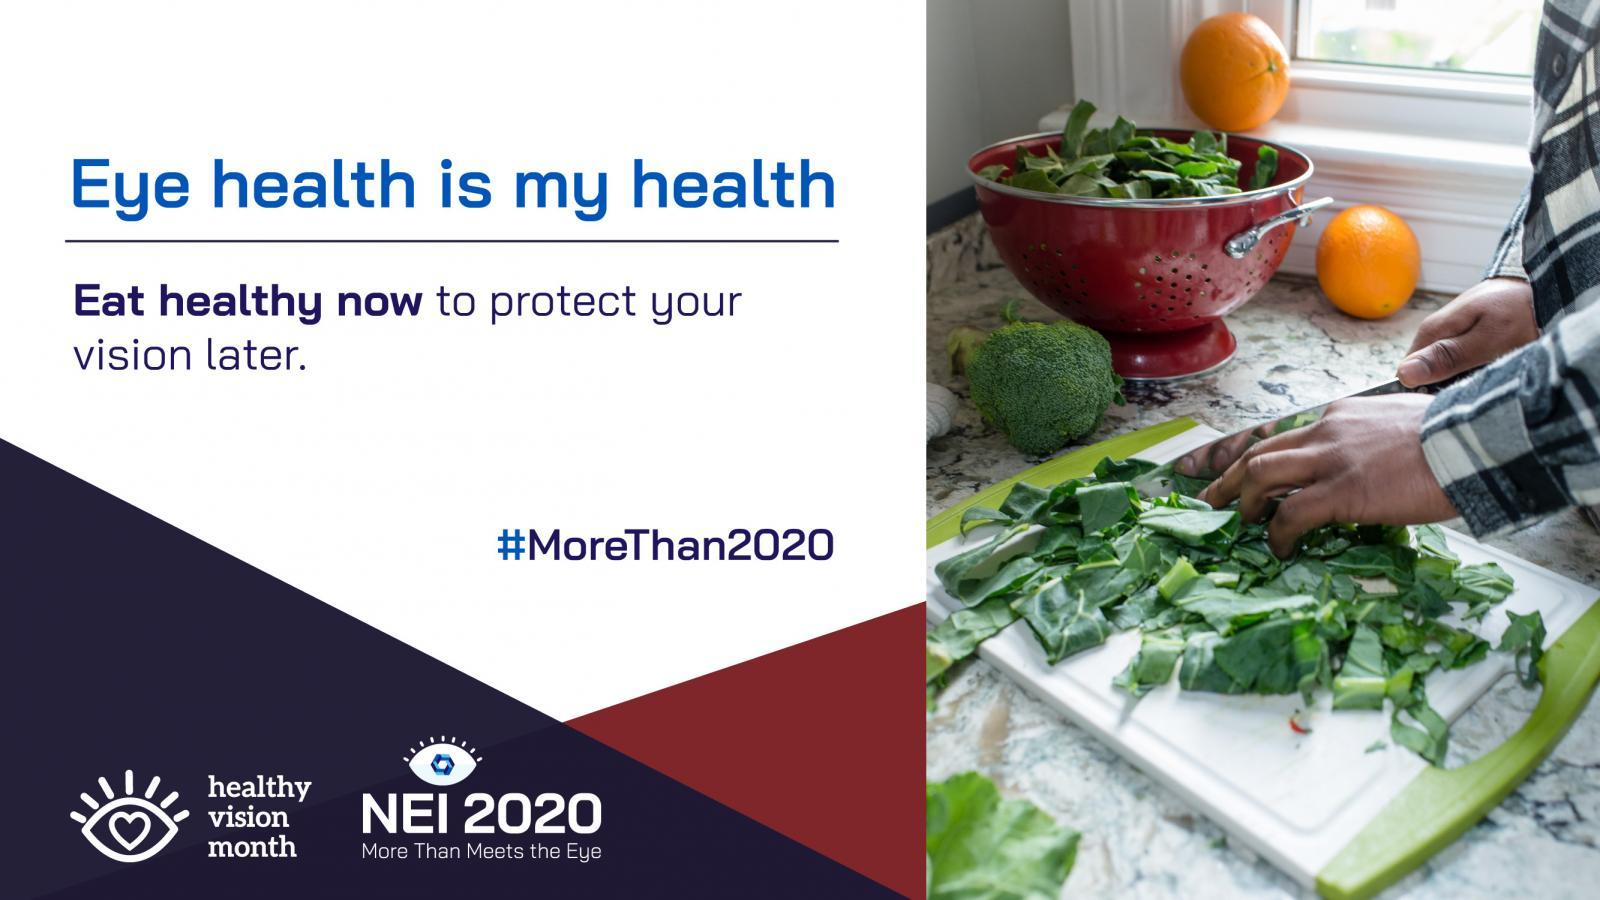 Eye Health Is My Health promotional graphic with a healthy vision tip, and a person chopping kale on a cutting board. Eat healthy now to protect your vision later